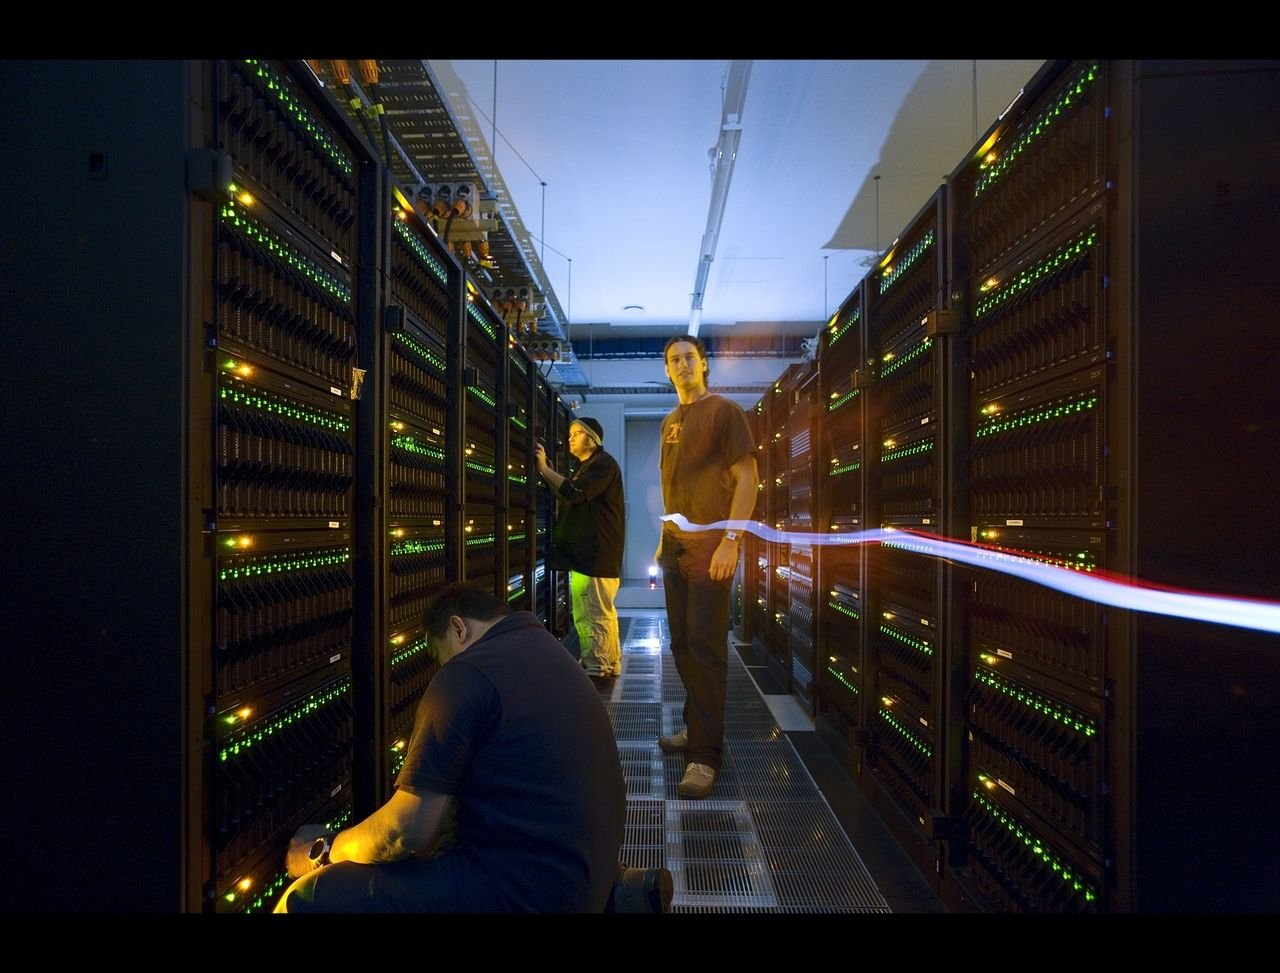 Picture Of The Weta Digital Data Center In New Zealand A 10 000